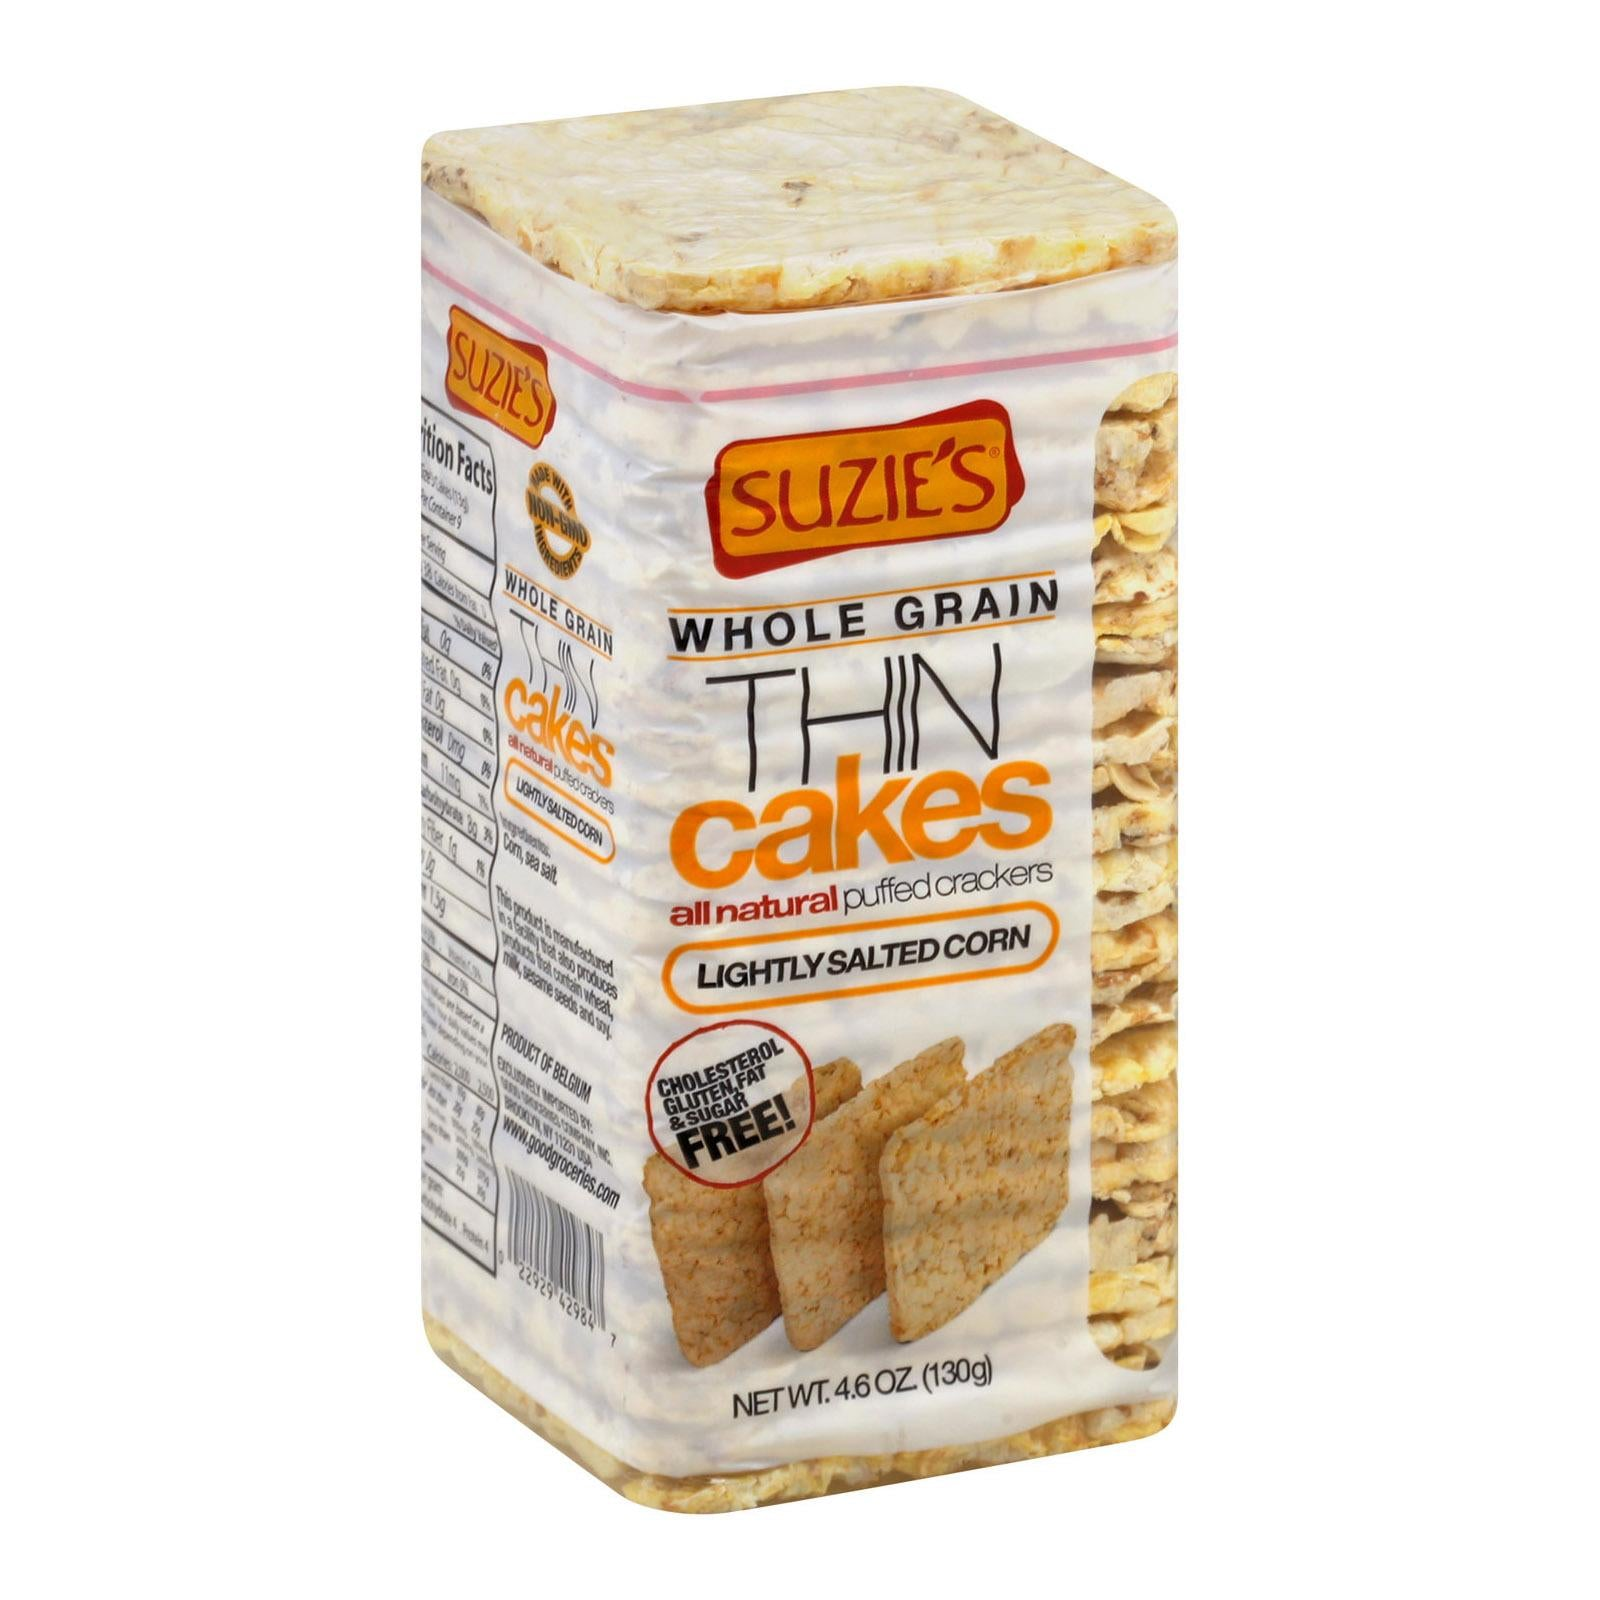 Suzie's Whole Grain Salted Puff Corn Cake Thin Cakes